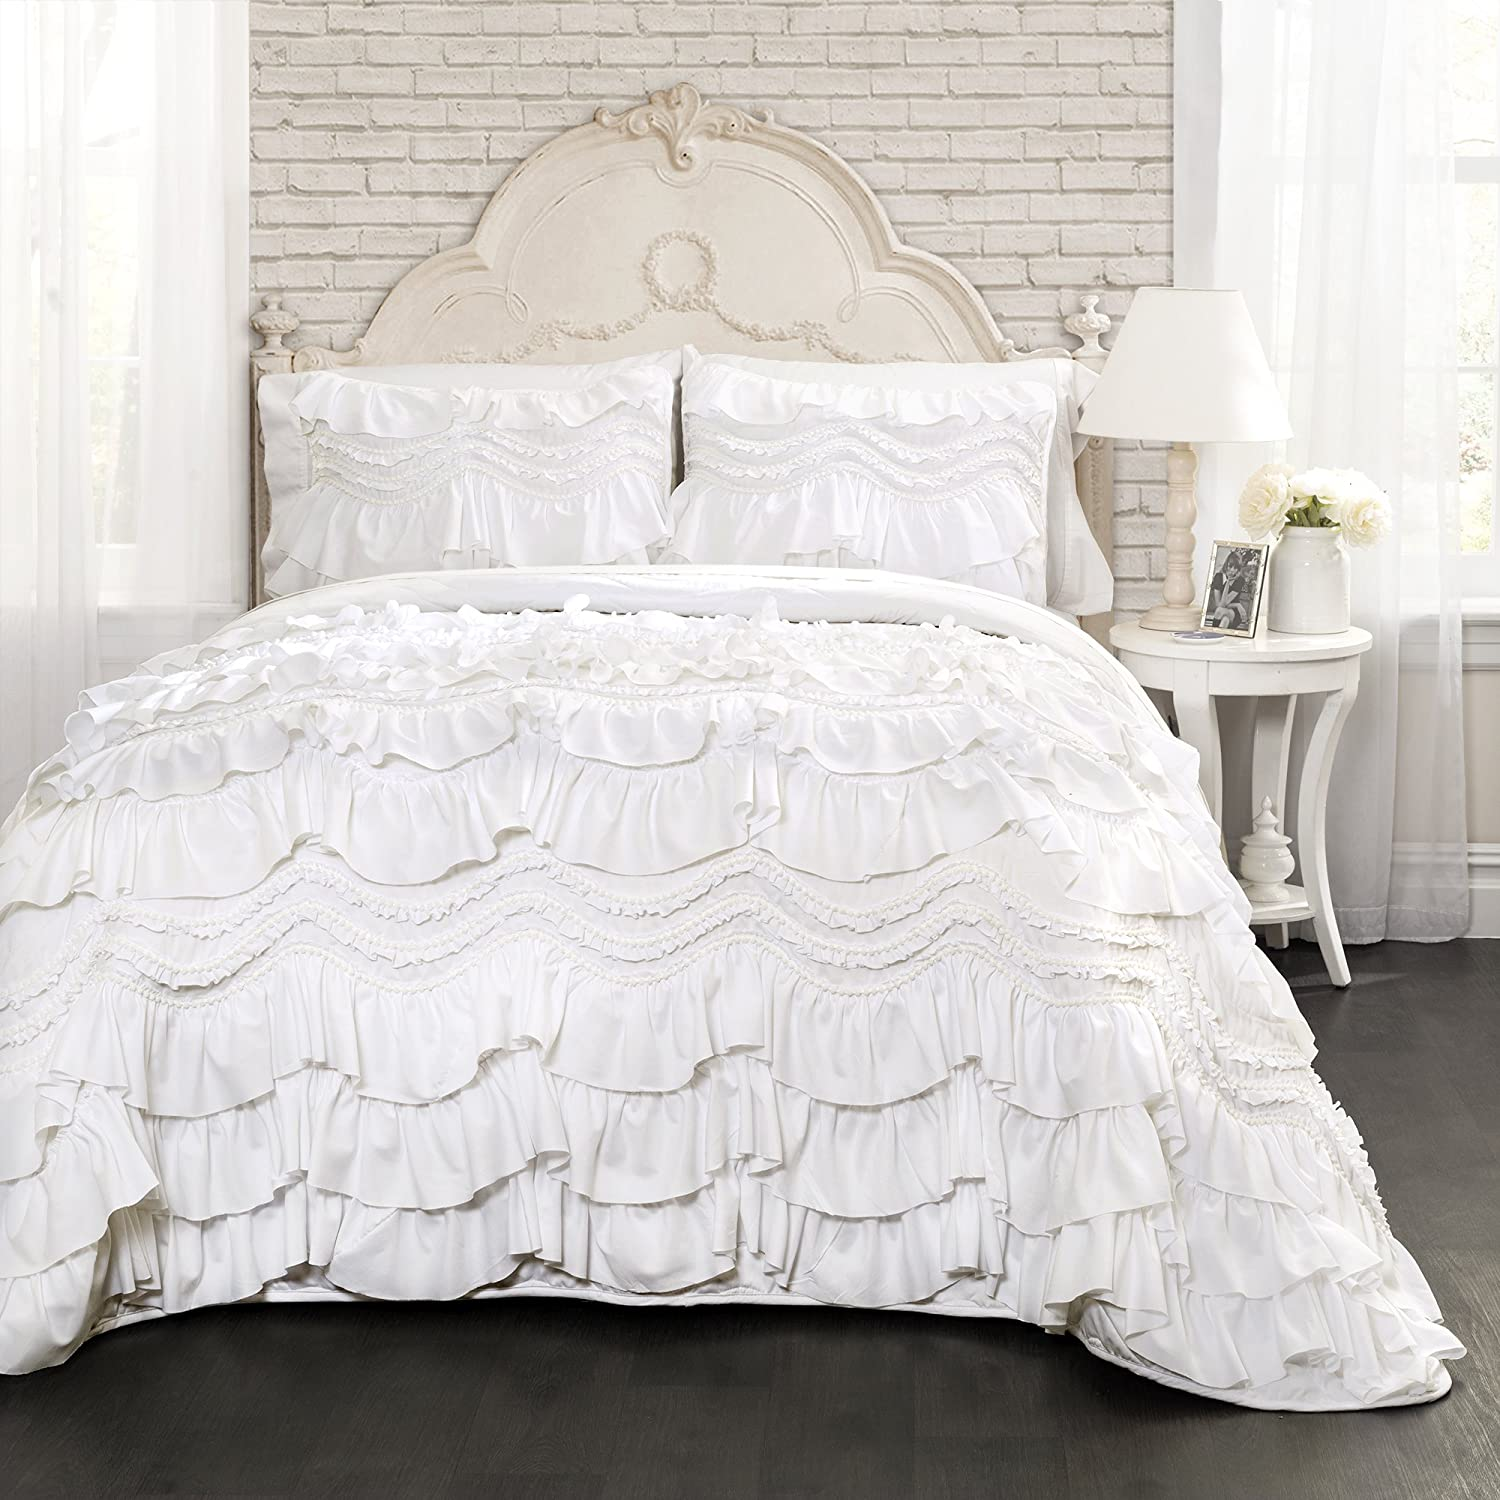 Lush Decor Kemmy Quilt Ruffled Textured 3 Piece Full Queen Size Bedding Set, White